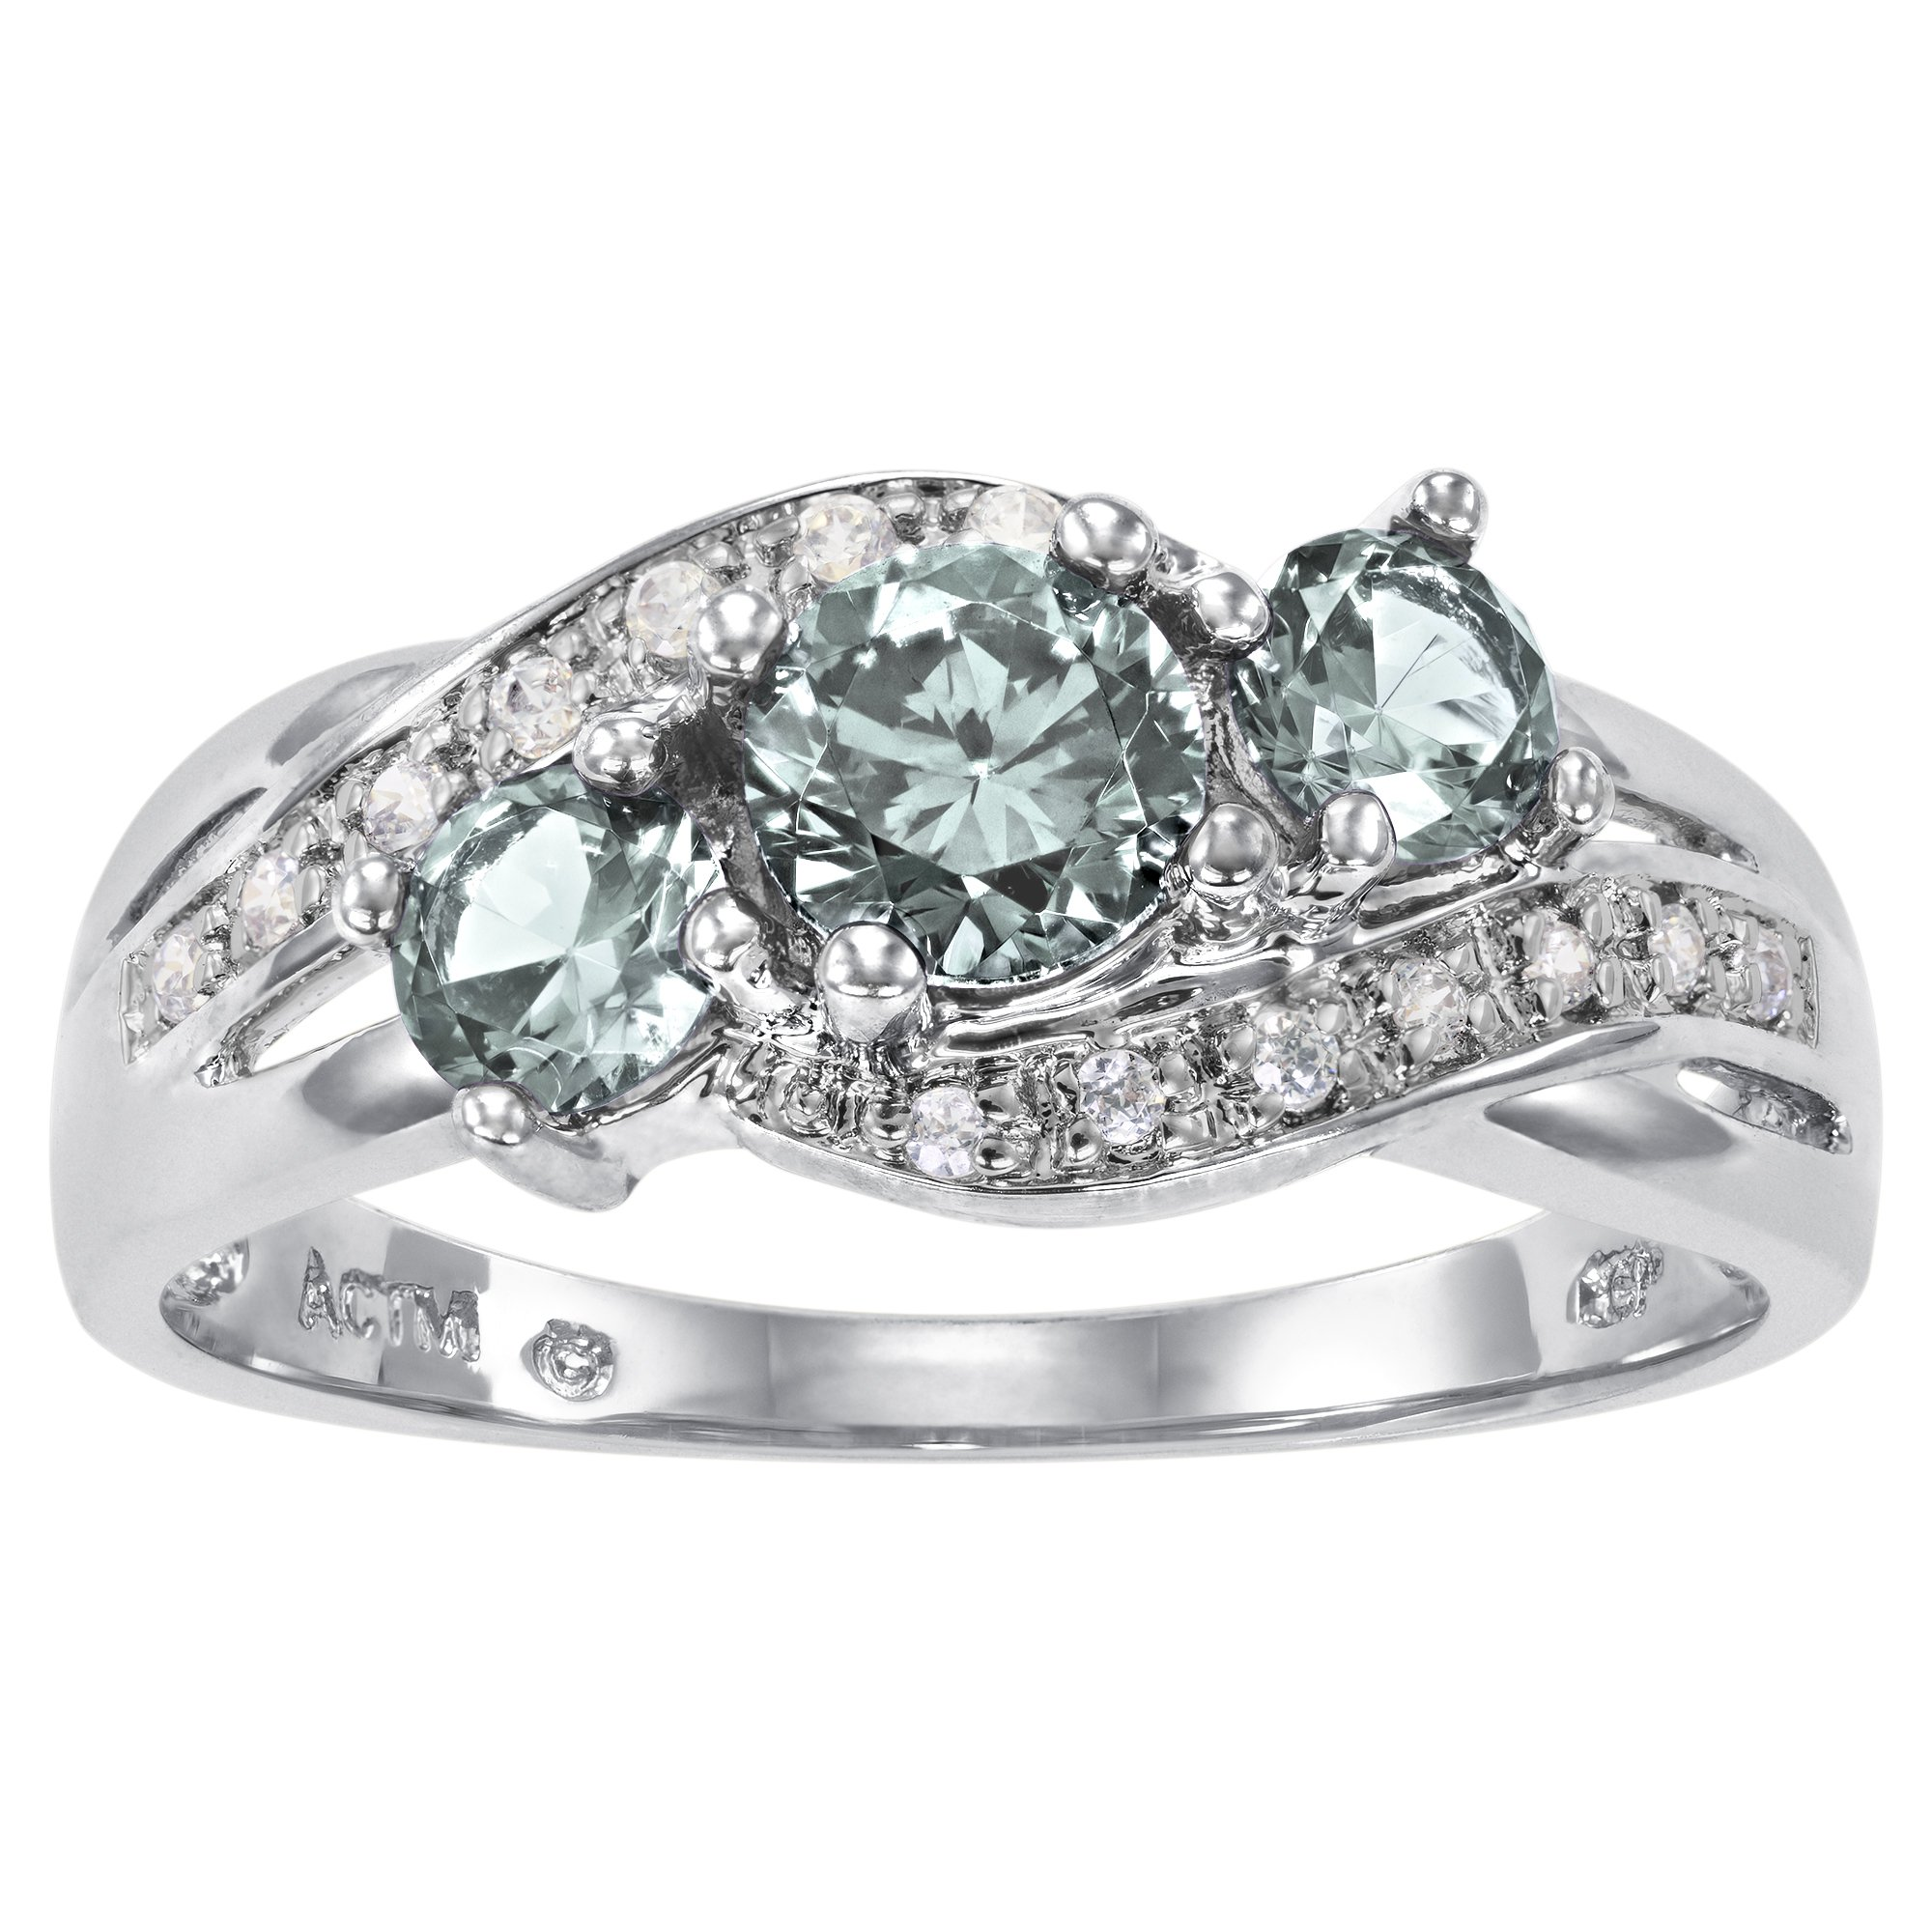 ArtCarved Love You TooSimulated Aquamarine March Birthstone Ring, Sterling Silver, Size 7.5